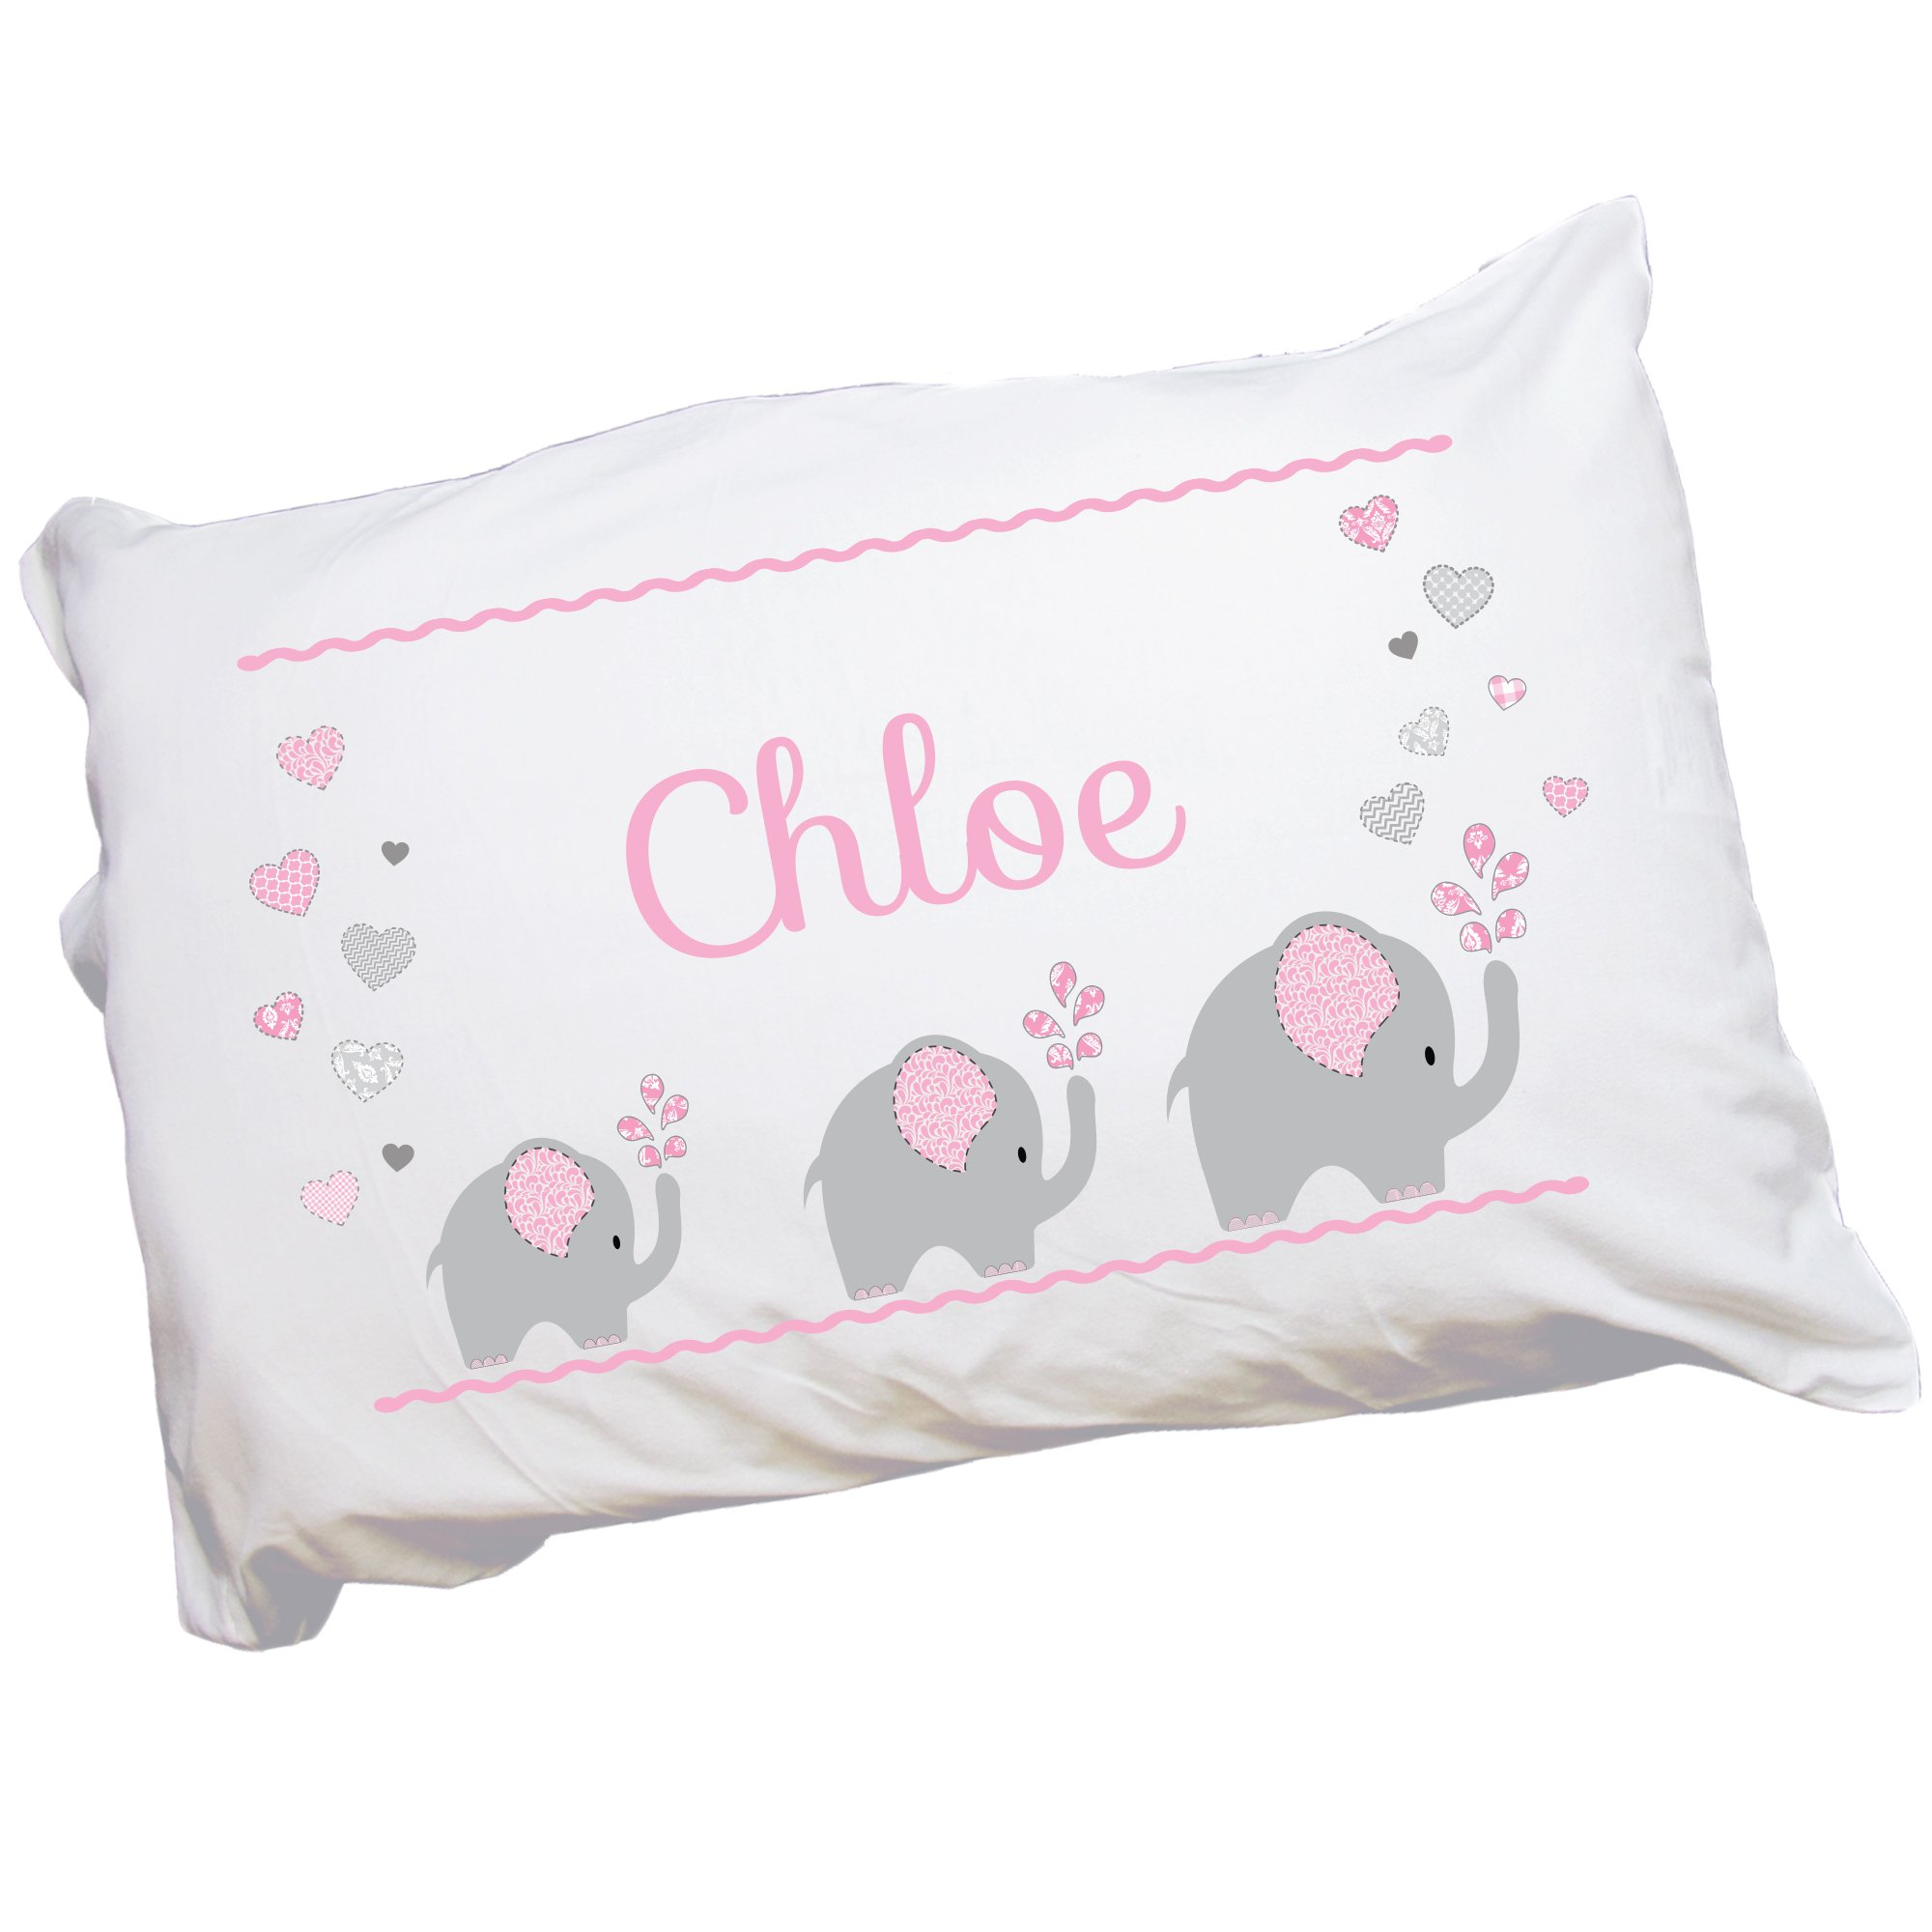 Child's Personalized Pink Gray Elephant Pillowcase